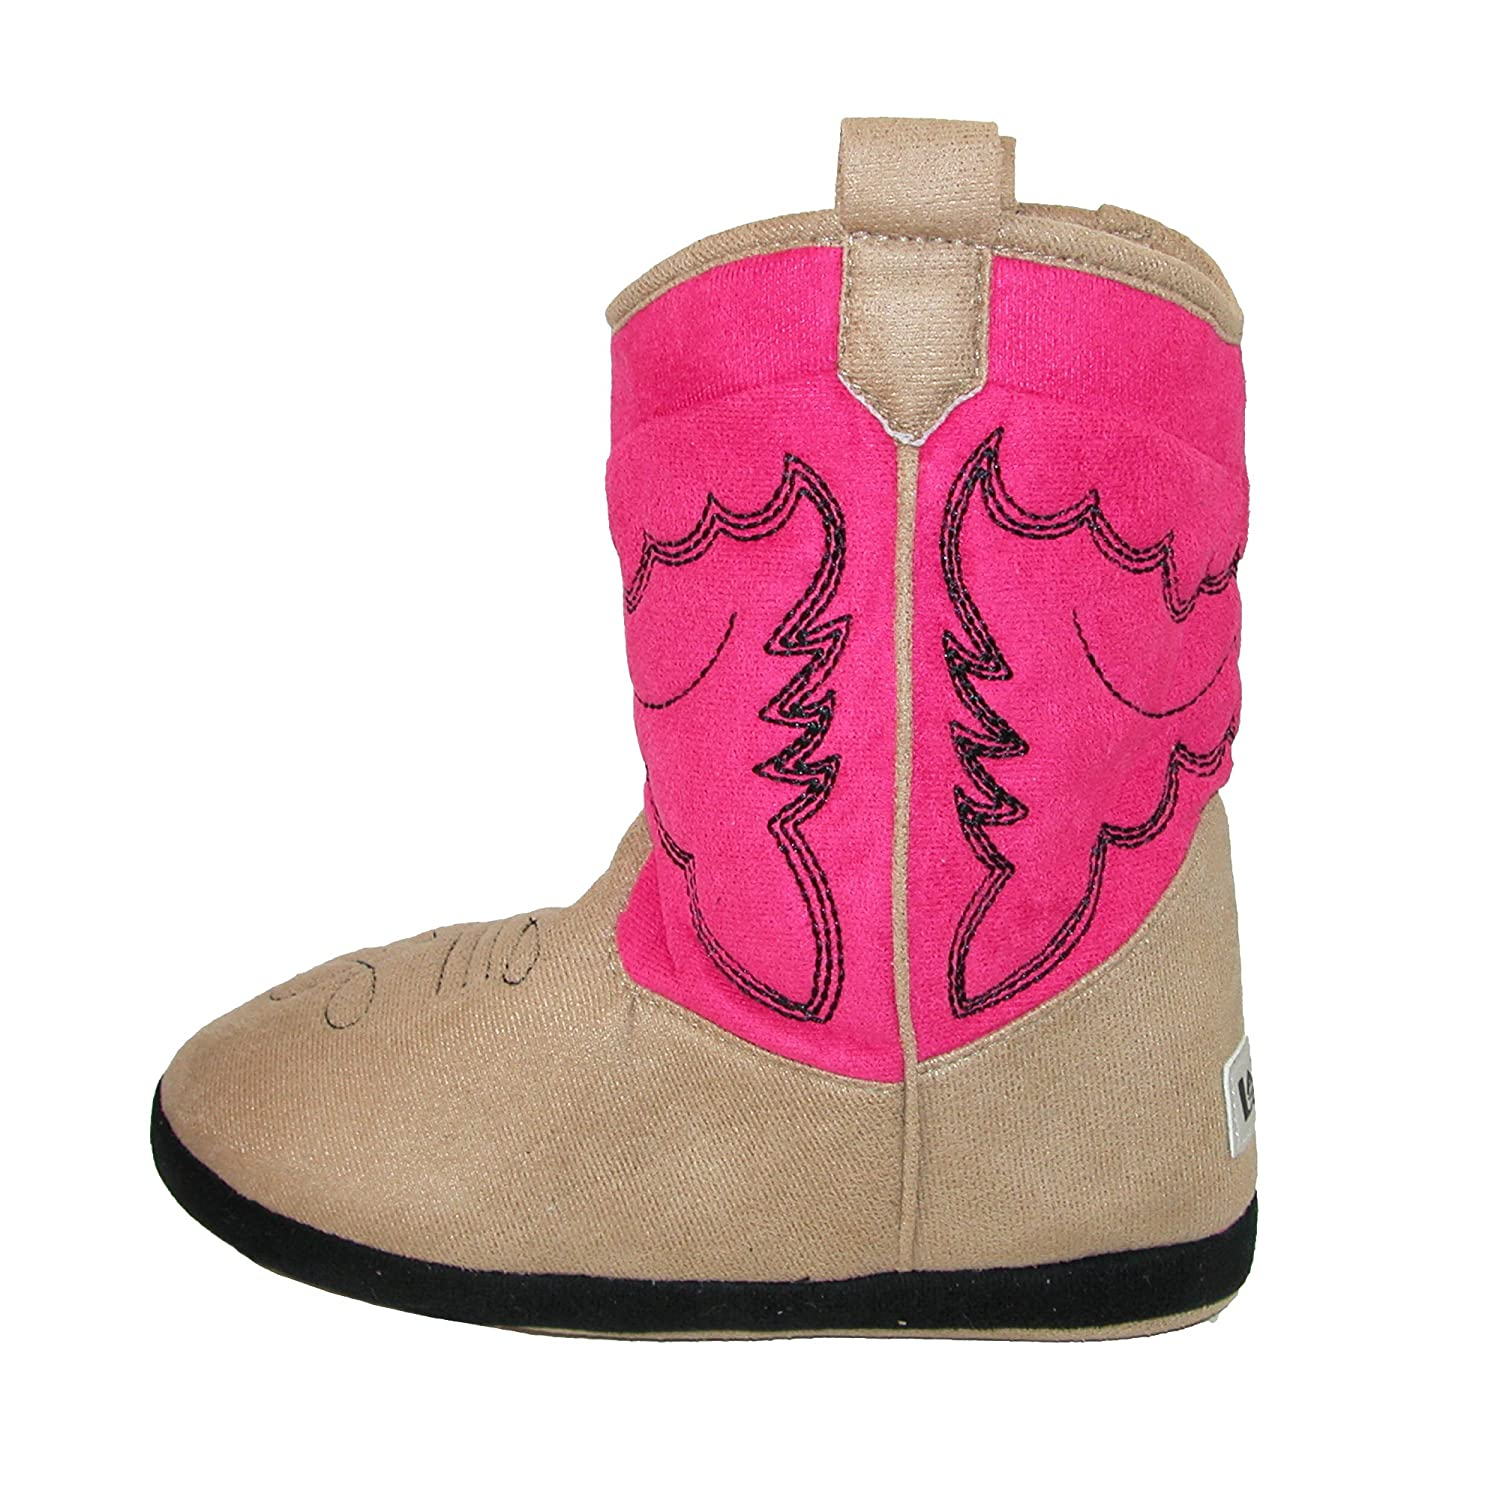 LazyOne Unisex Rosa Cowboy Bootie Slippers